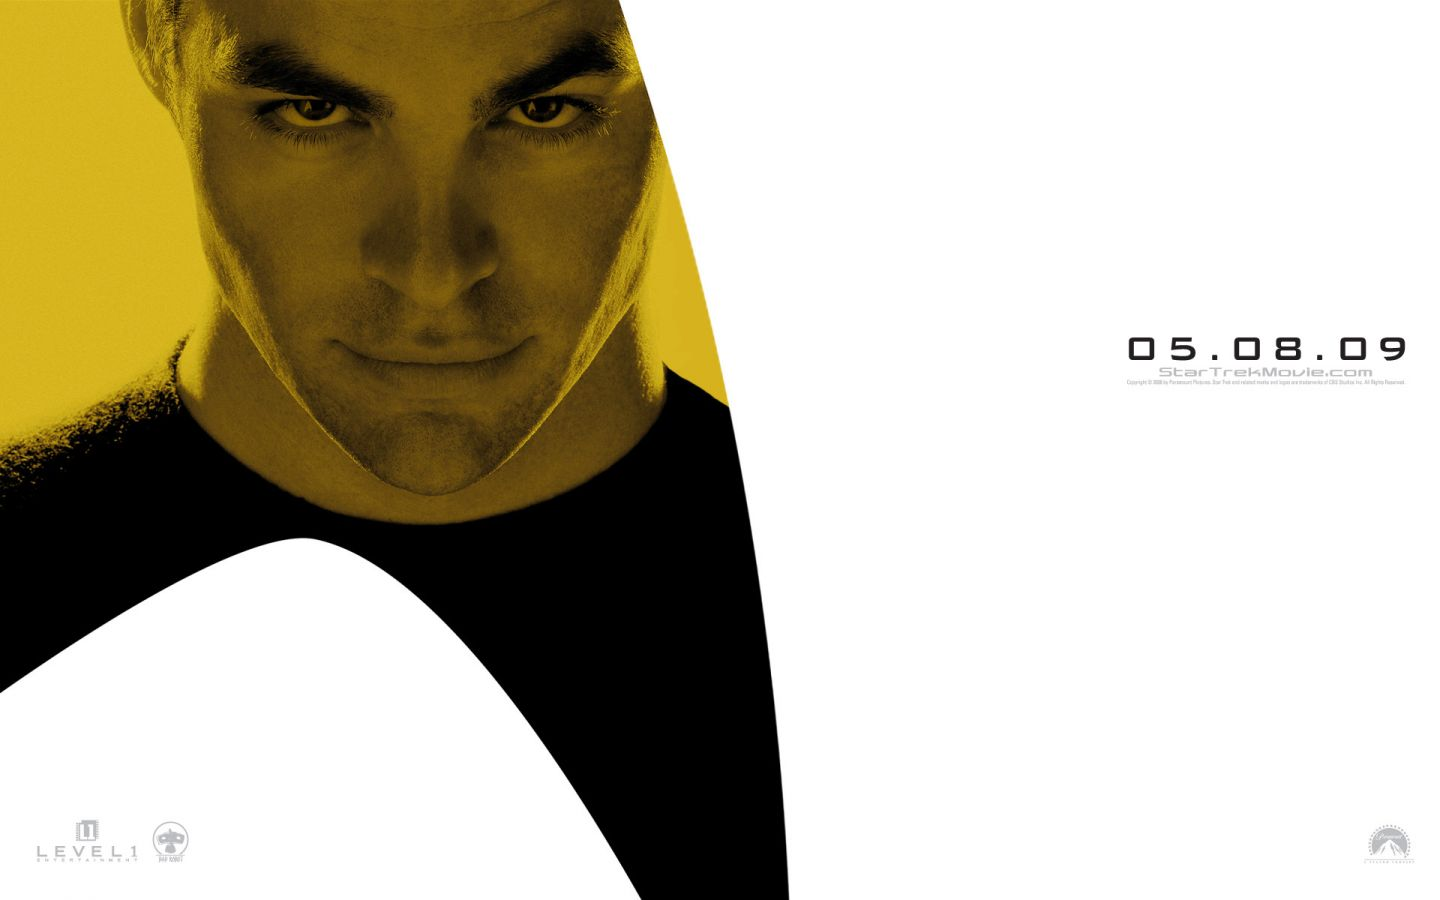 James Kirk Star Trek 2009 Wallpaper 1440x900